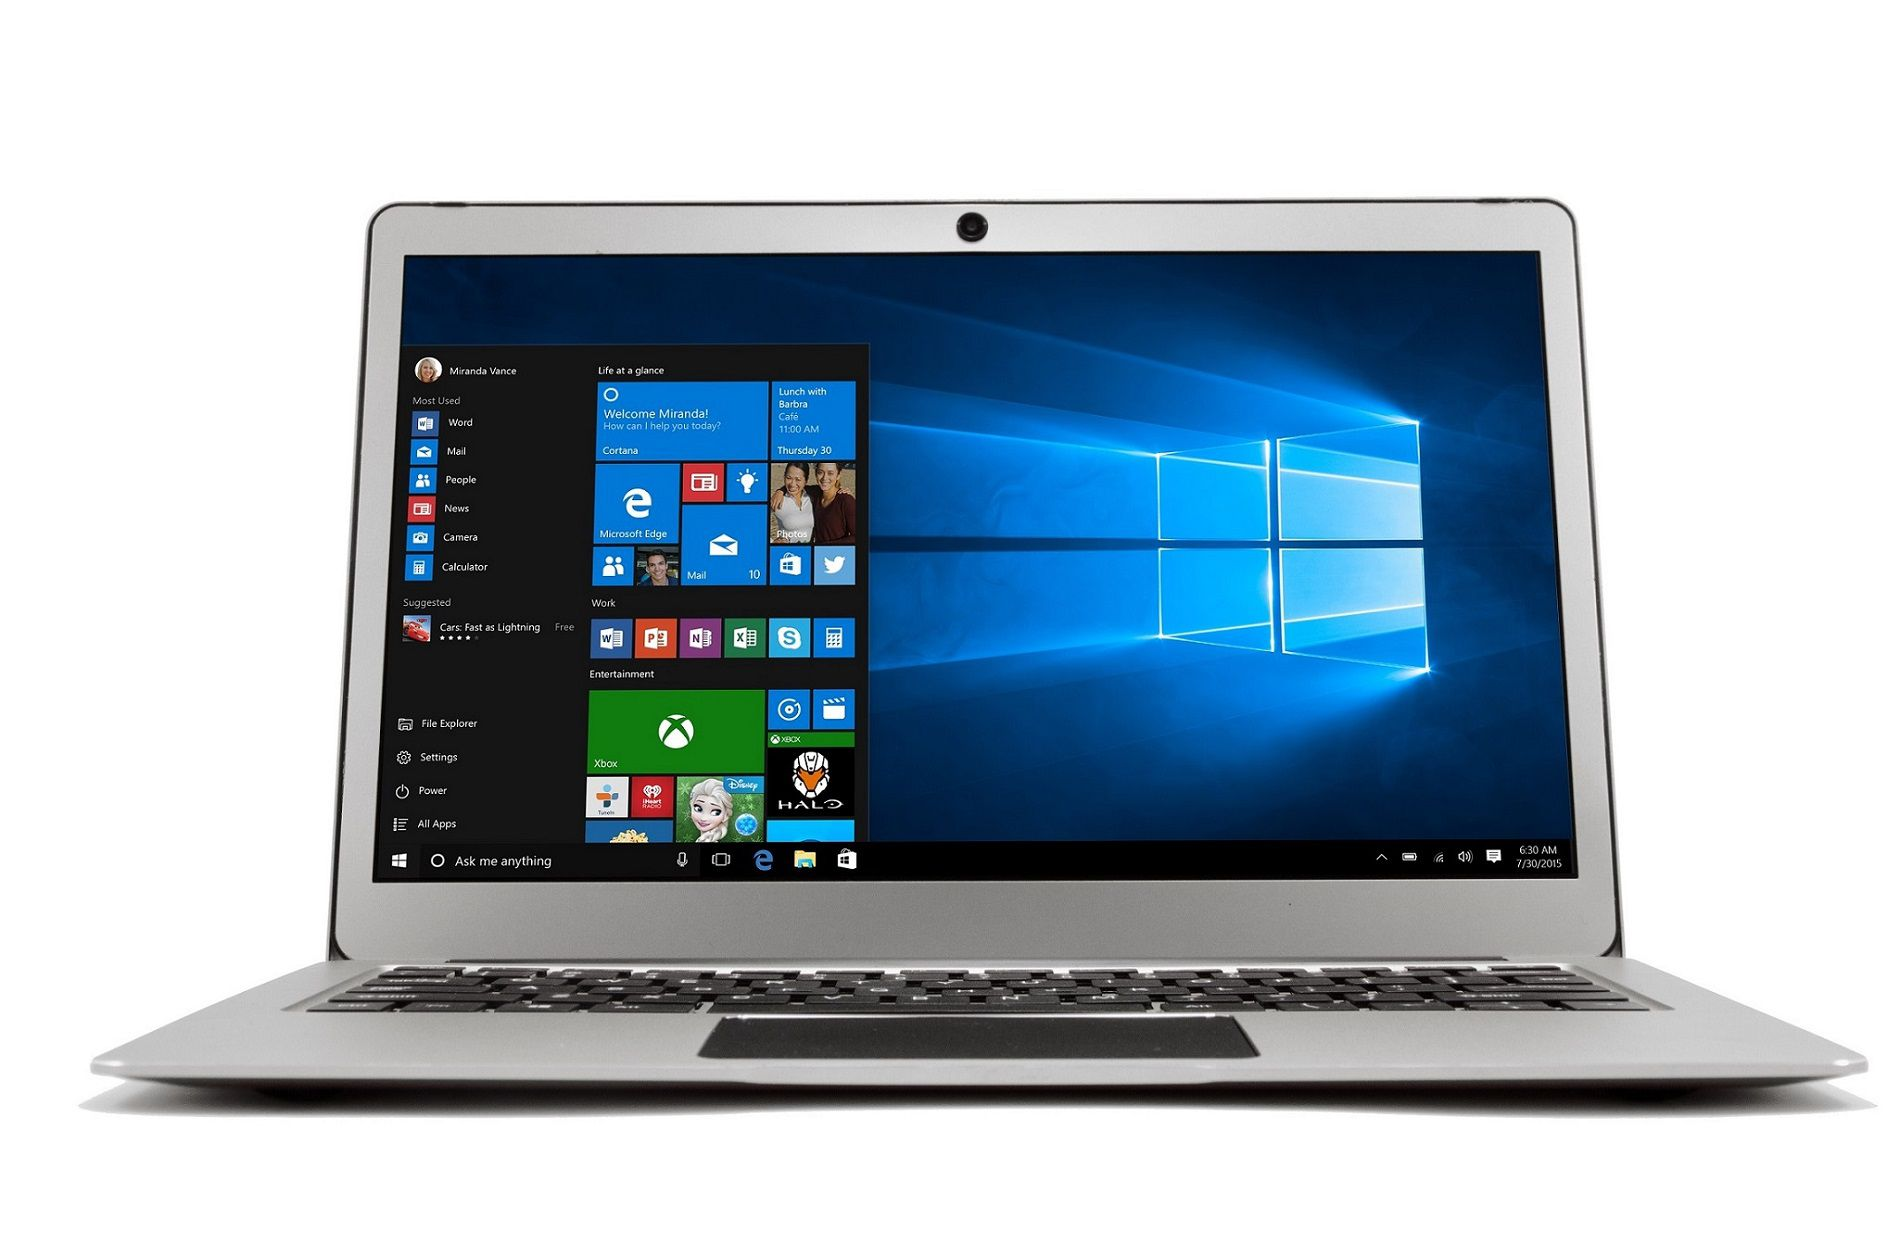 Notebook Happy Intel Celeron Tela 13.3 2gb Prata Windows 10